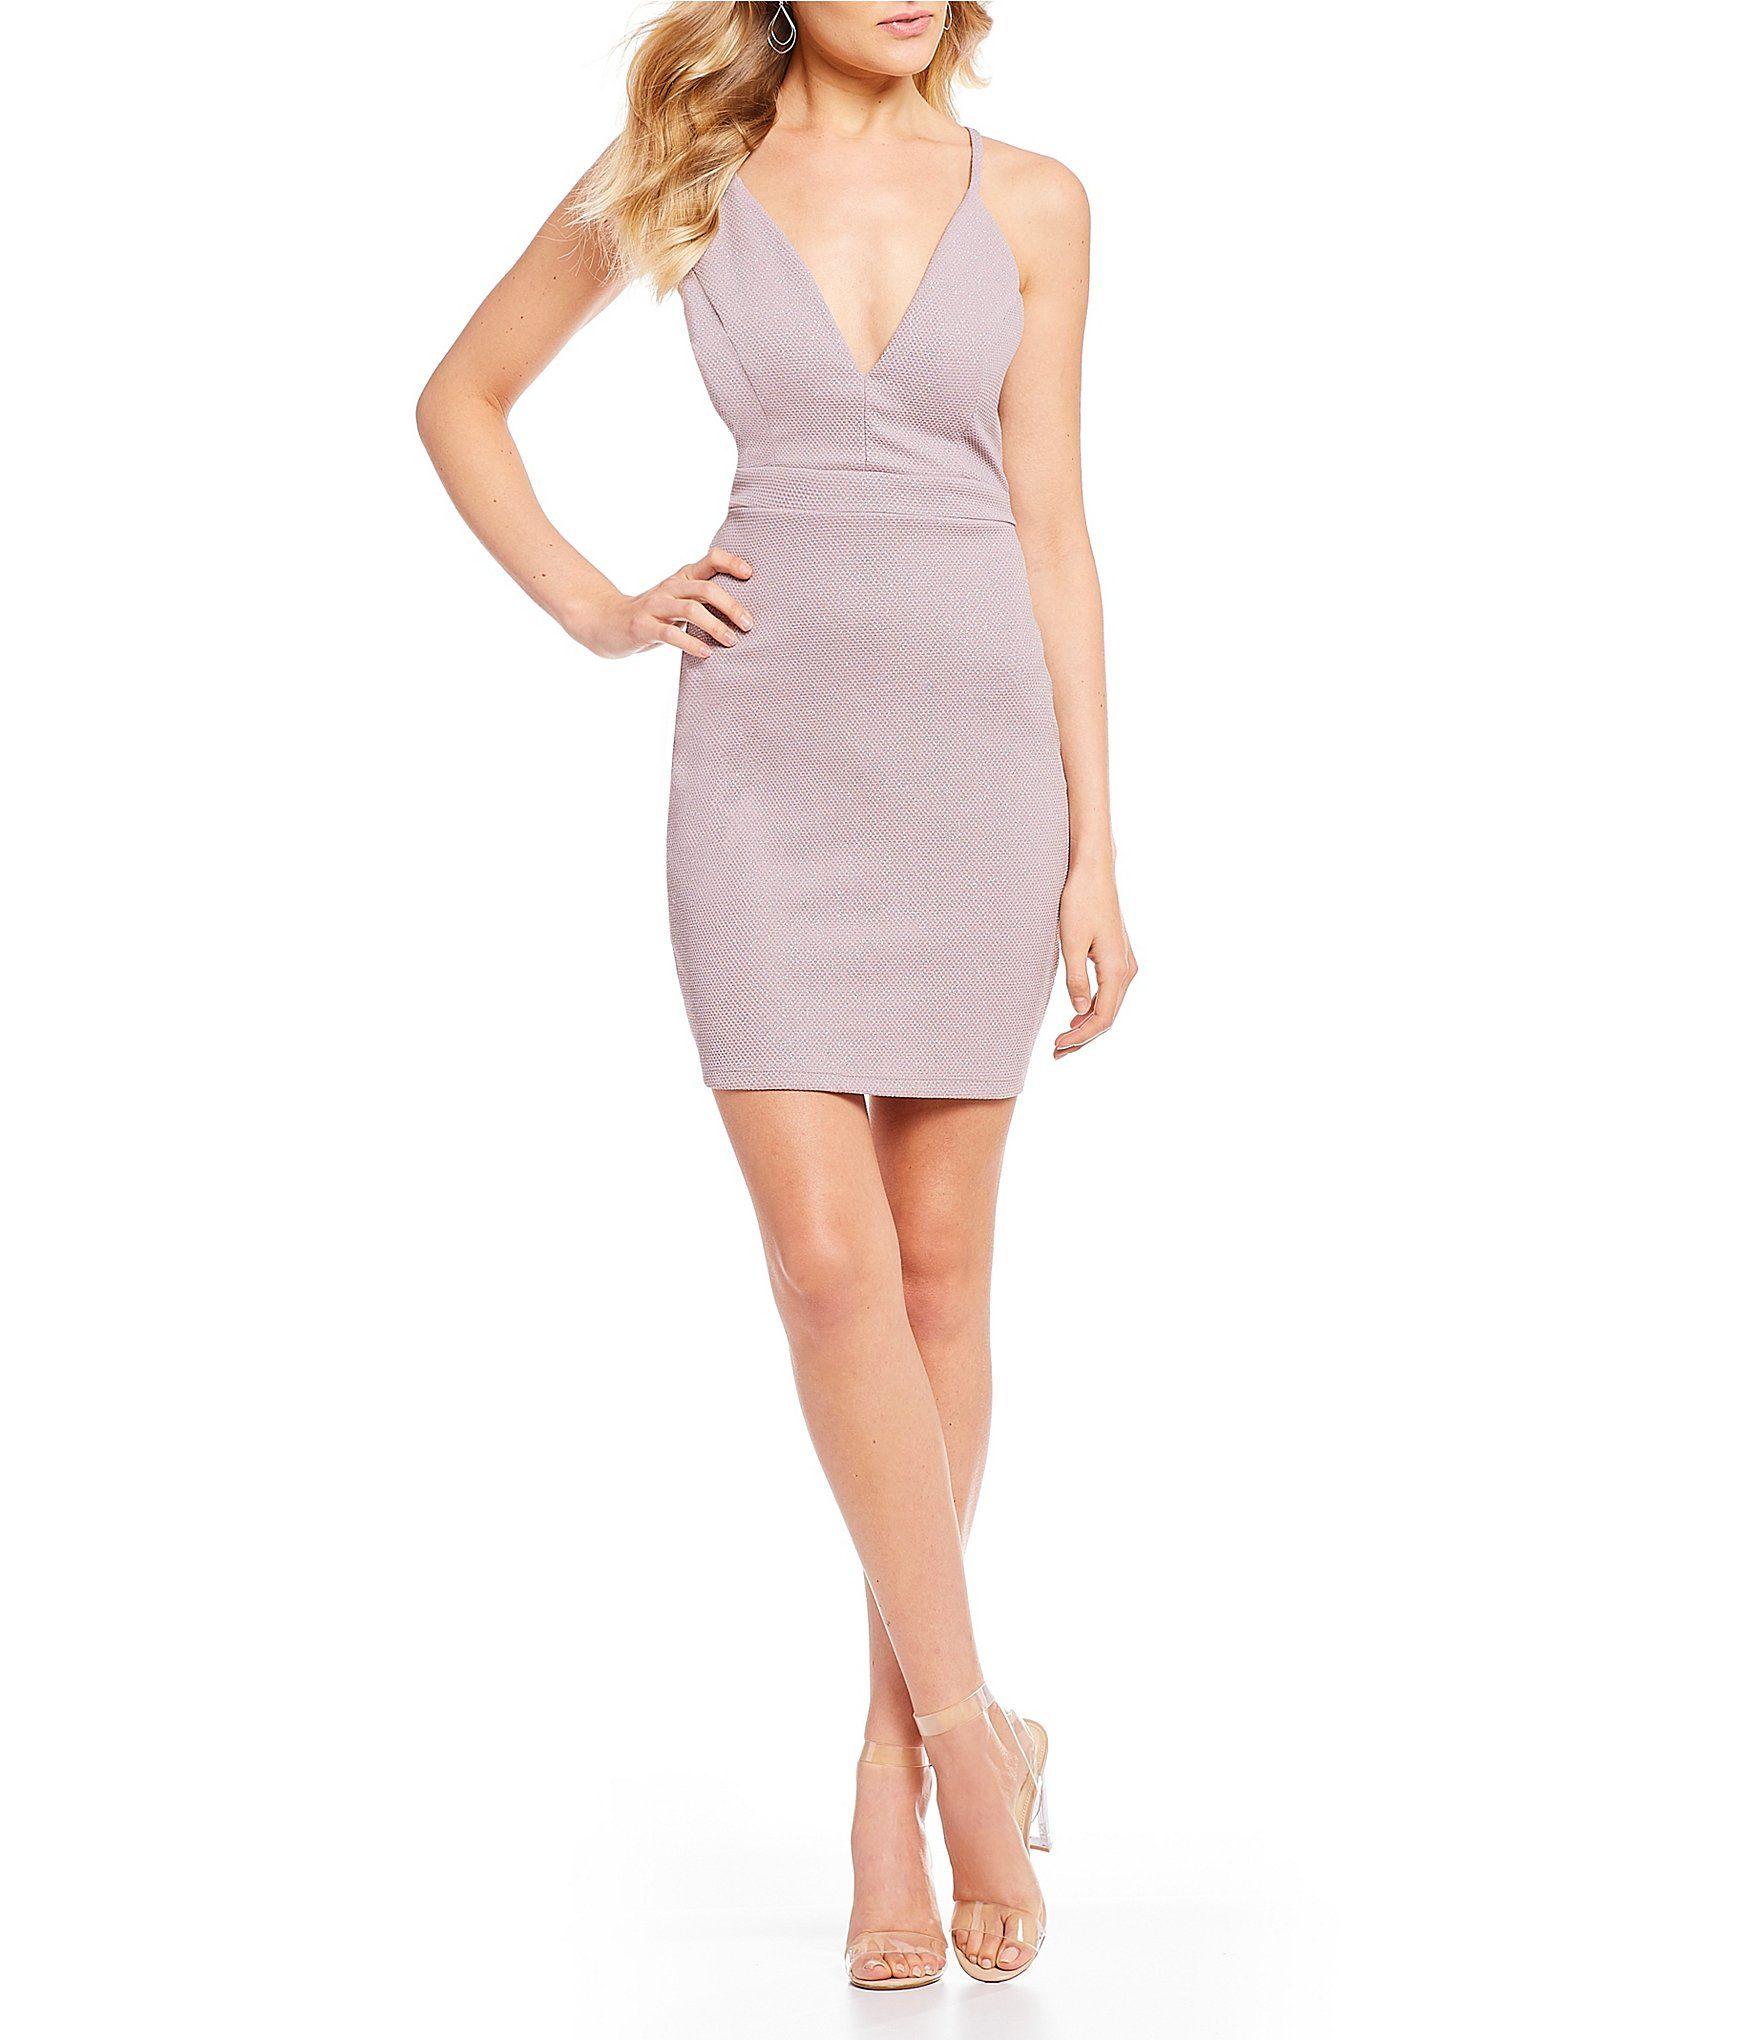 6c491dd6efb Shop for Honey and Rosie Glitter-Accented Bra-Back Bodycon Dress at  Dillards.com. Visit Dillards.com to find clothing